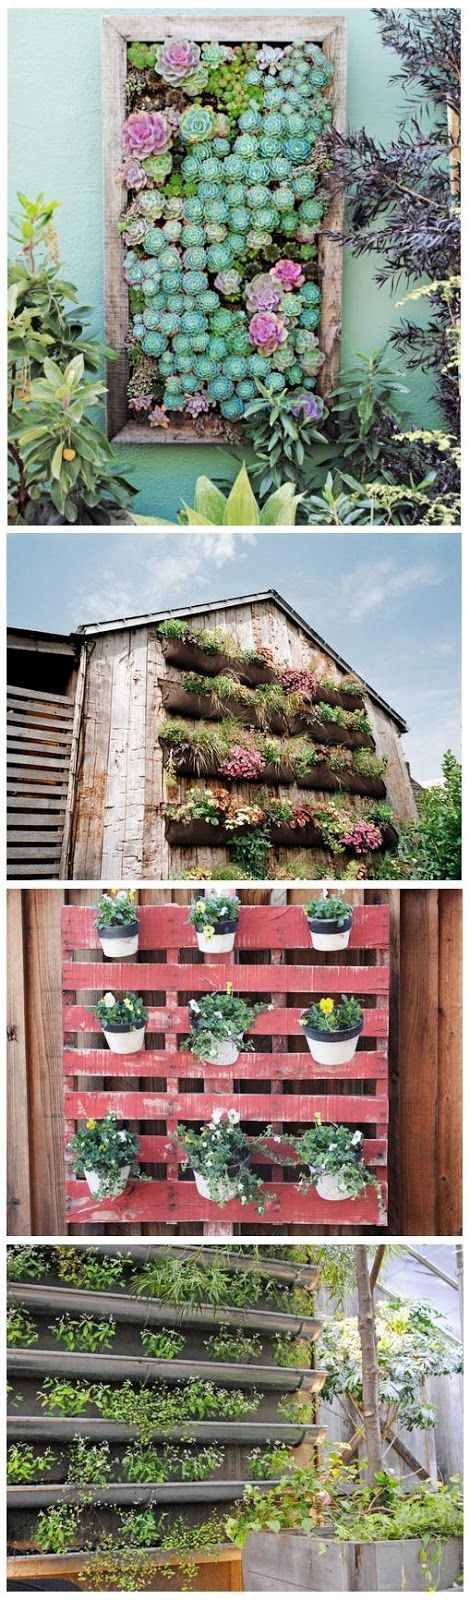 Vertical Gardening Ideas | World In Green- I absolutely love the first one! A vertical succulent garden is such a great idea